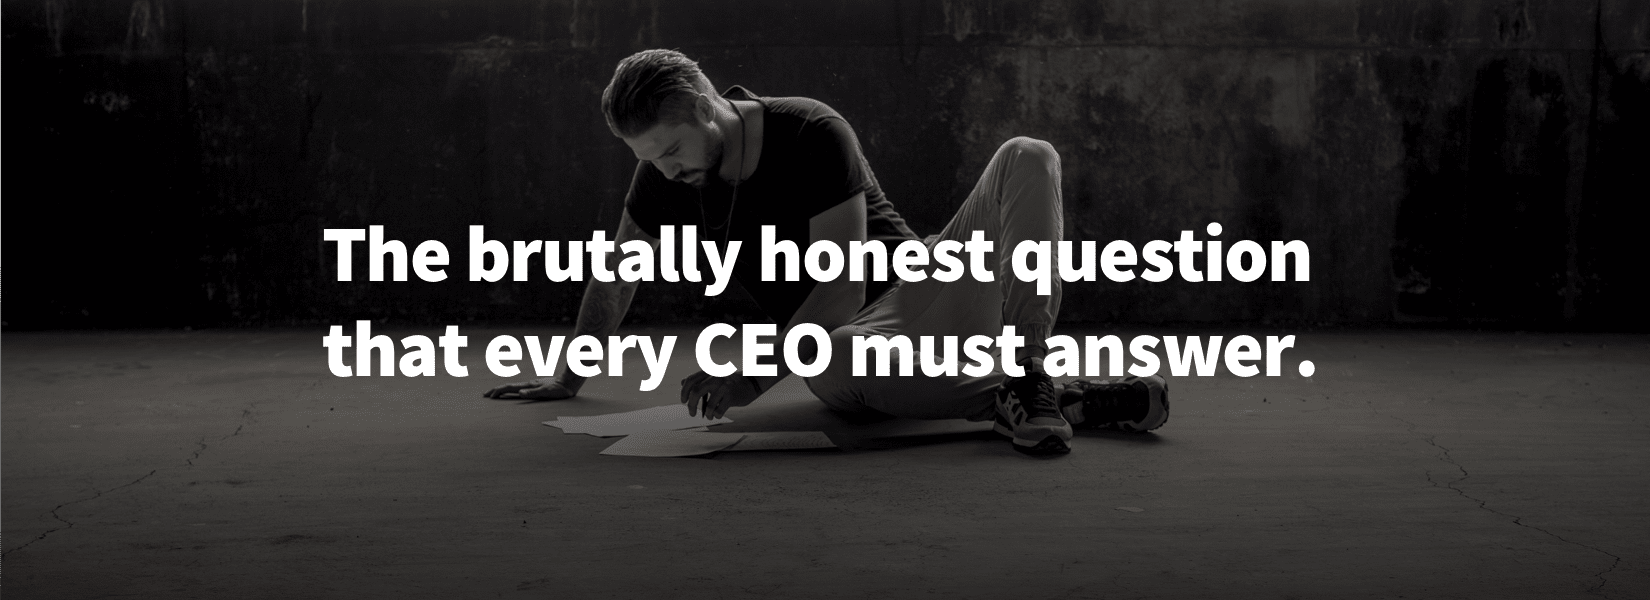 The brutally honest question every CEO must answer.